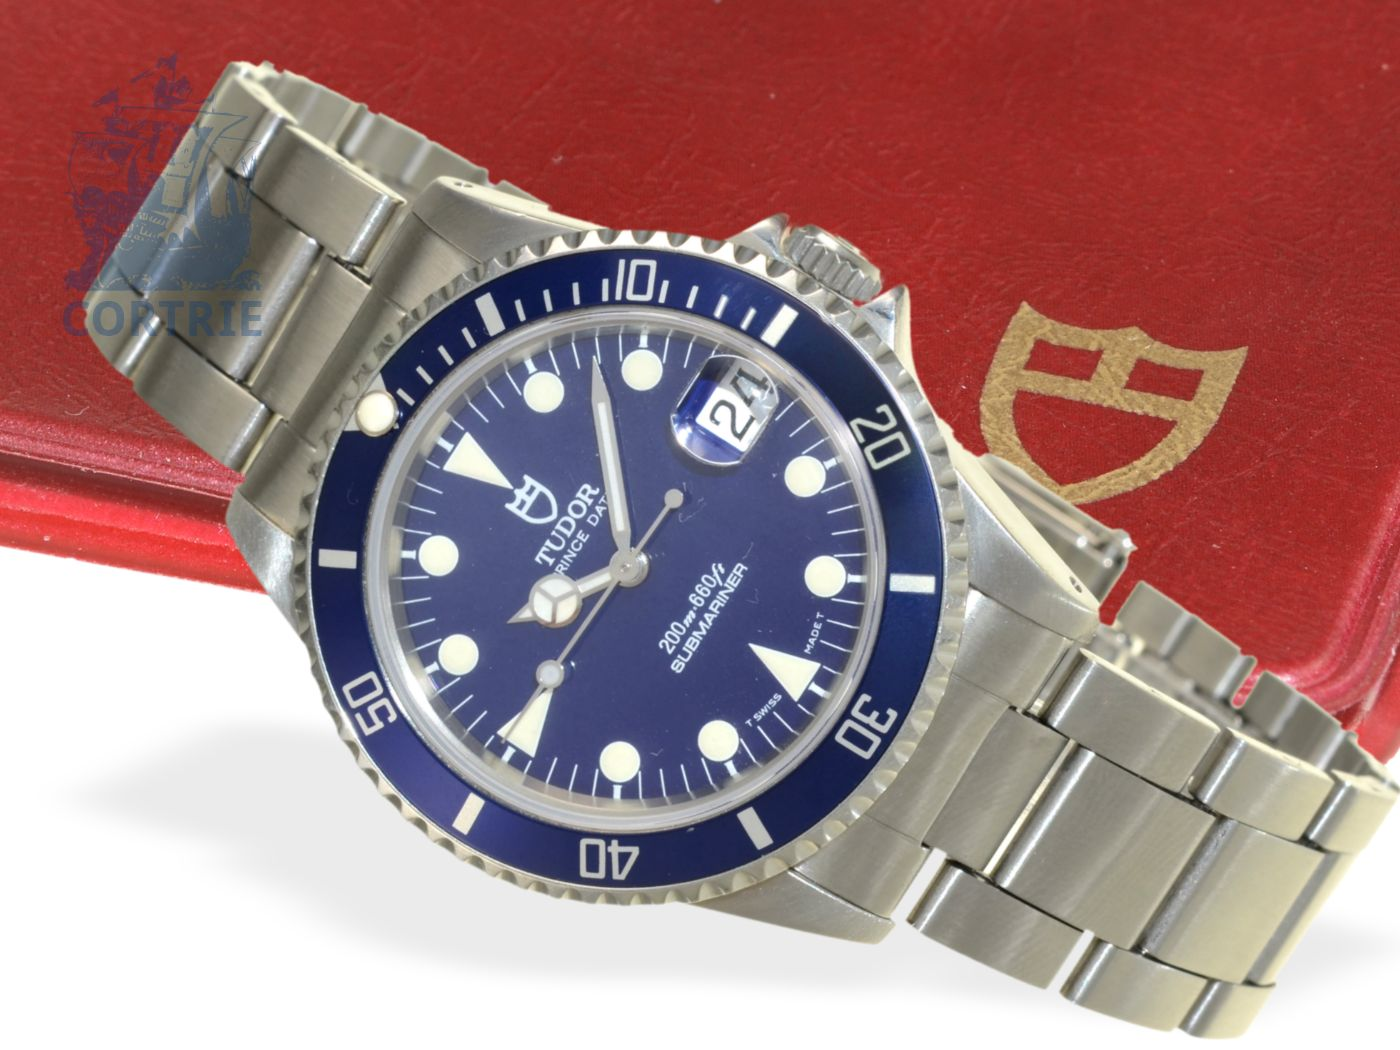 Wristwatch: vintage Tudor Prince Submariner Blue with original box and certificates, ref. 75190, from the 1980s-